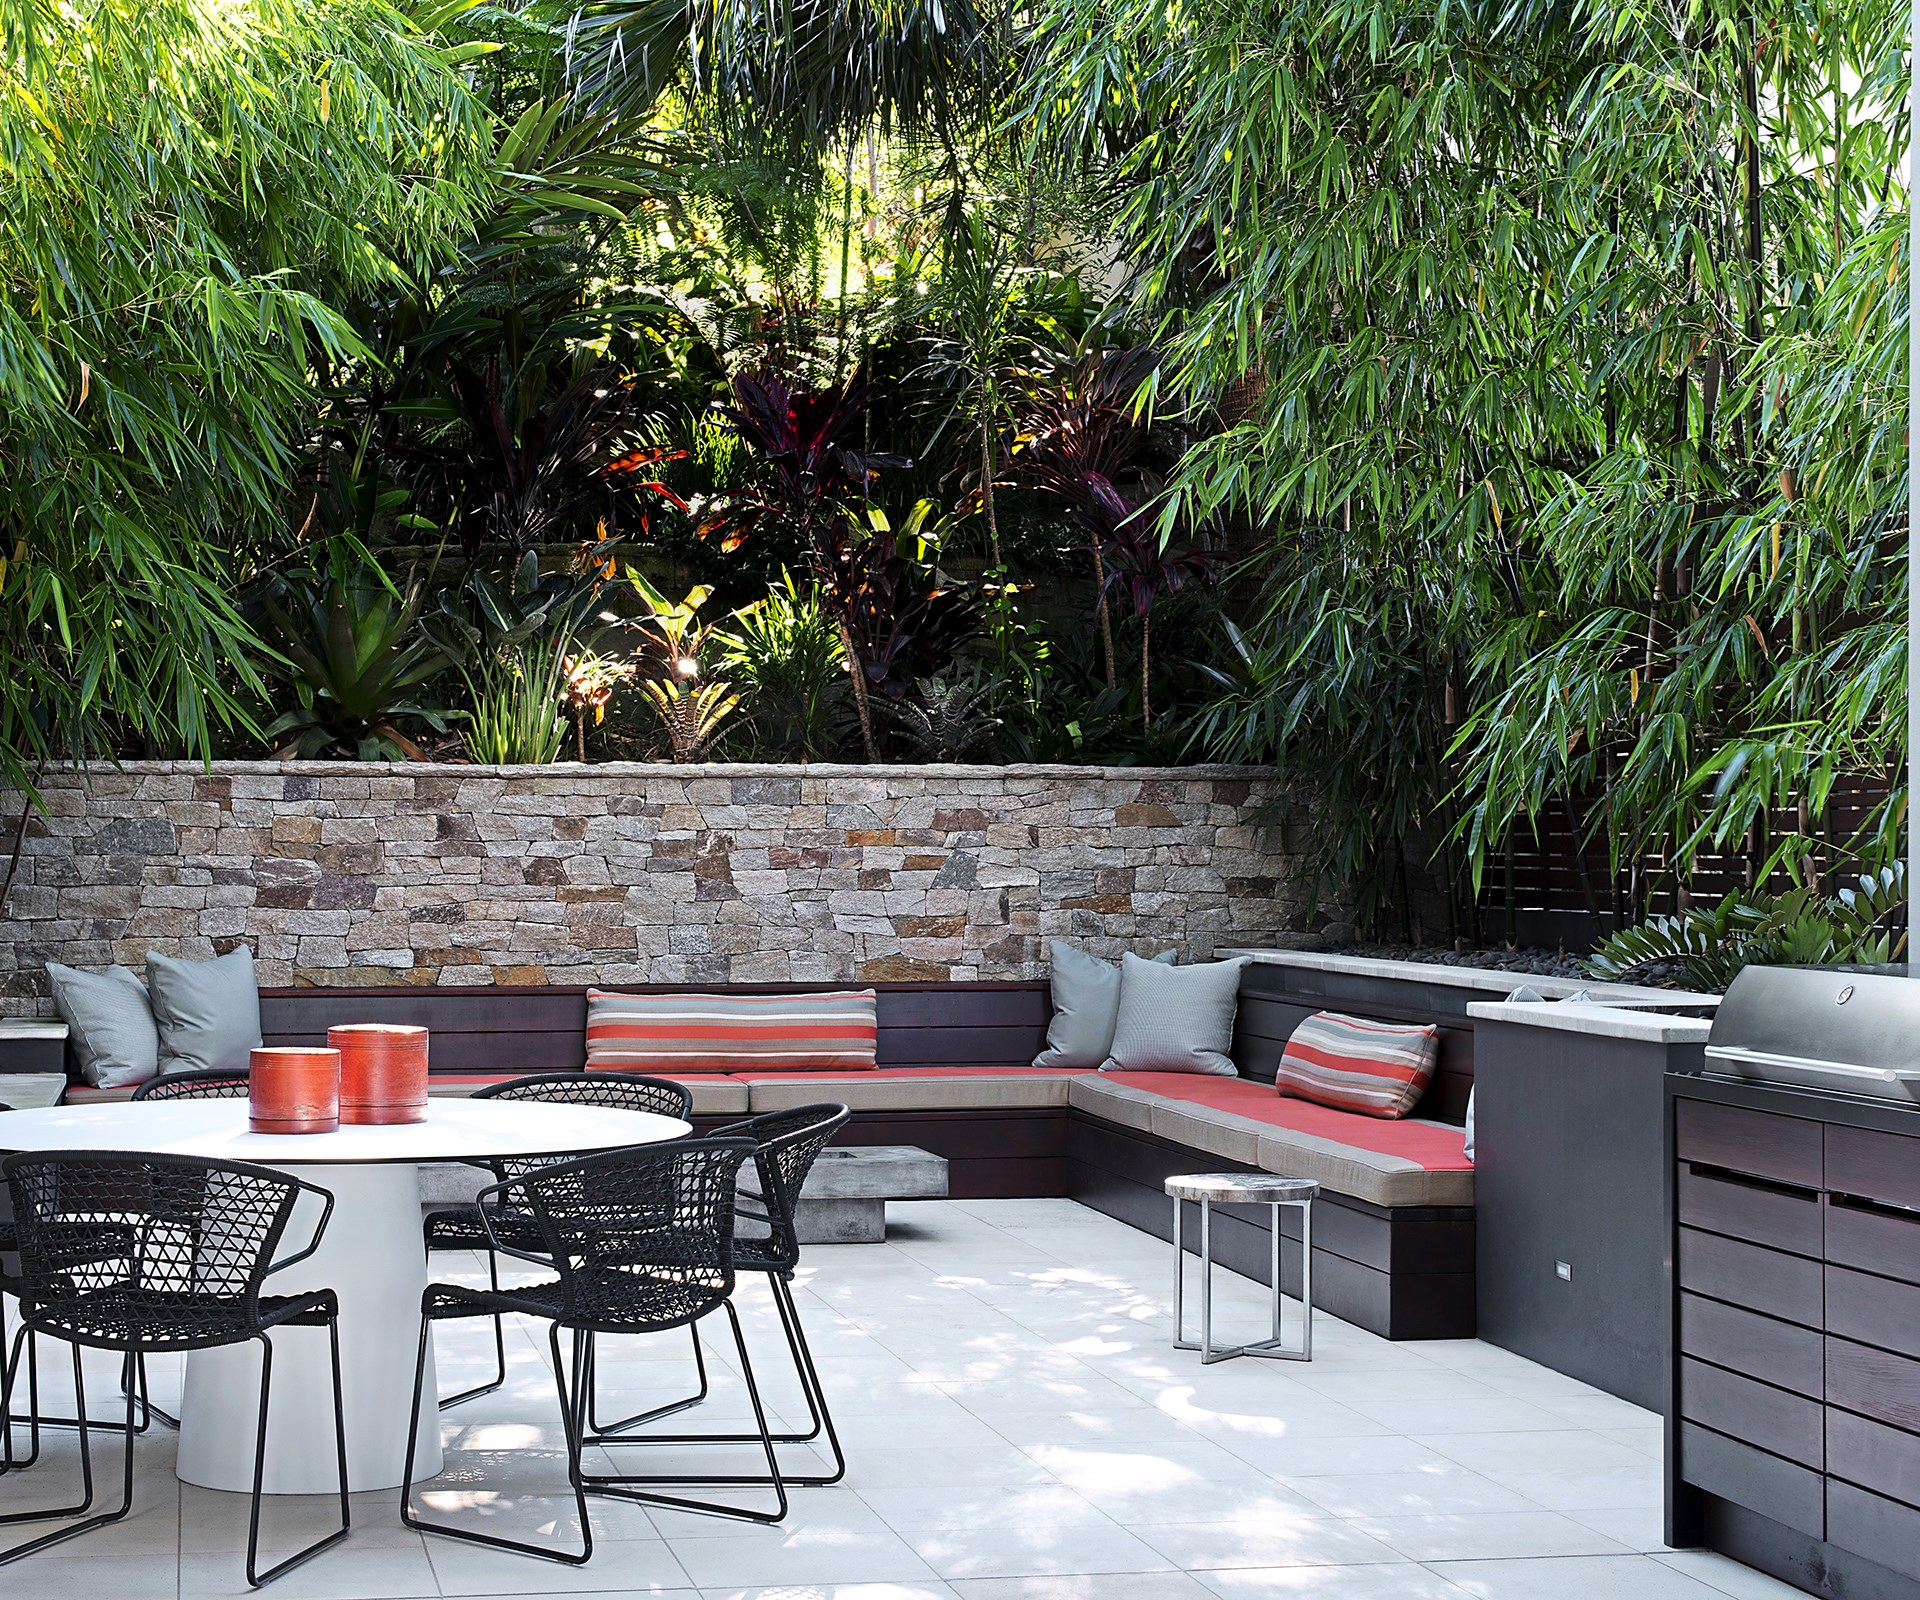 If your outdoor area is on the small side, bench seating around the edge makes the most of the space you have and provides plenty of seating during a backyard barbie. Read about [6 outdoor rooms that get the balance right](http://www.homestolove.com.au/6-outdoor-rooms-that-get-the-balance-right-1649). Photo: *Australian House & Garden*